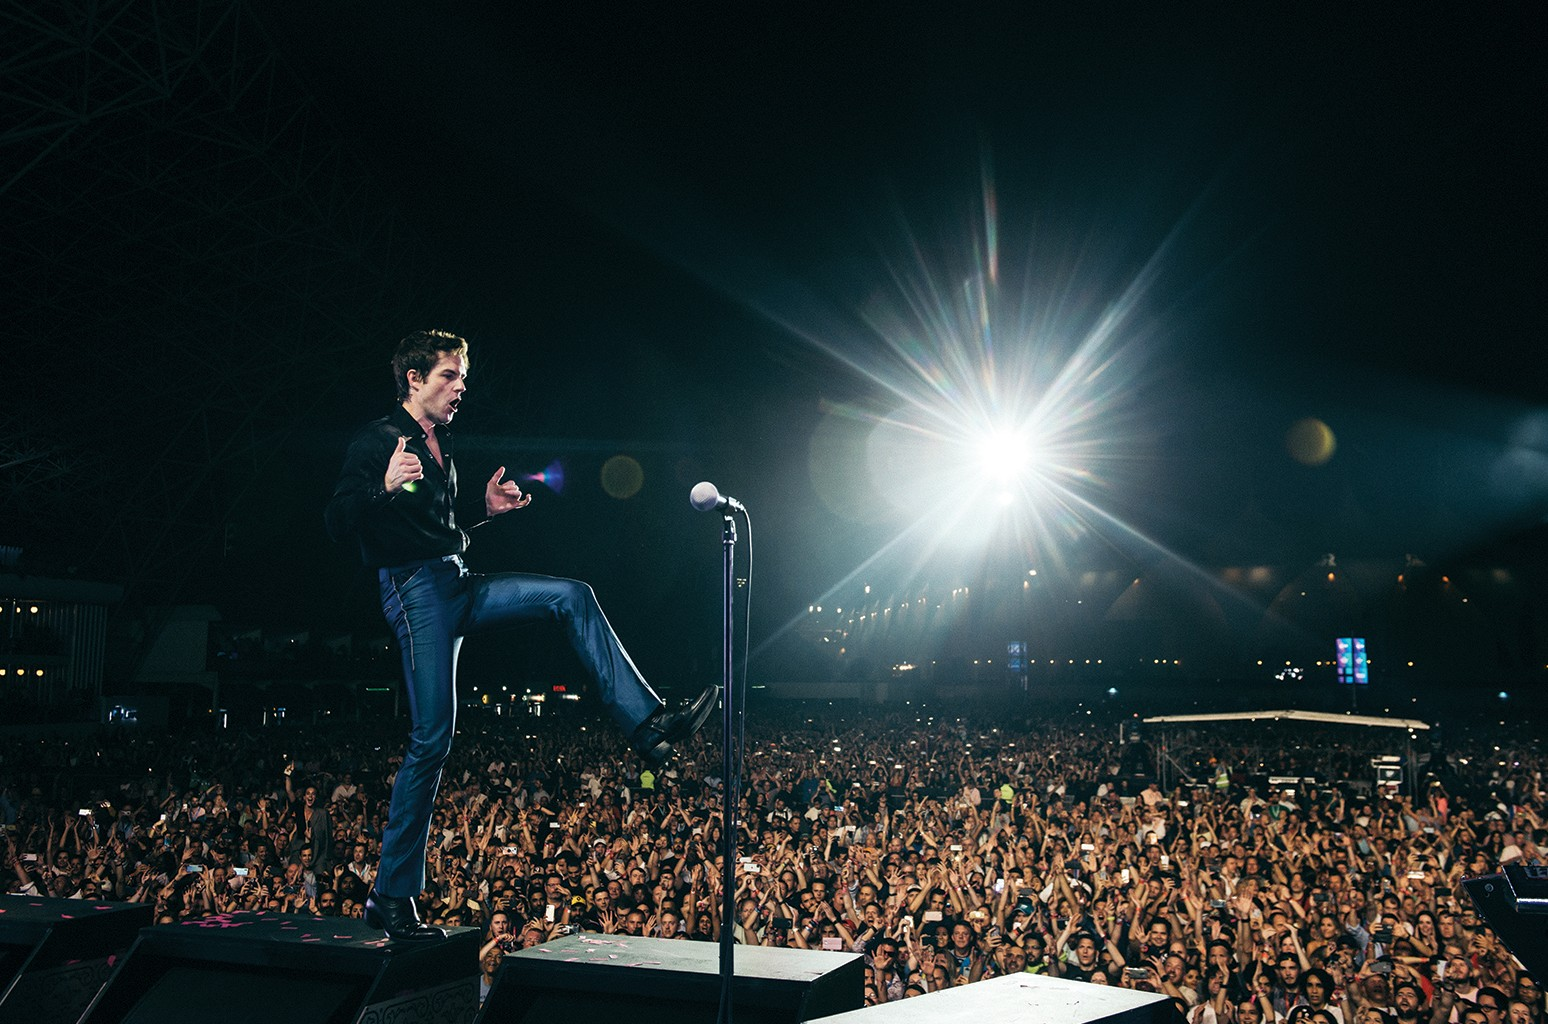 Brandon Flowers and The Killers